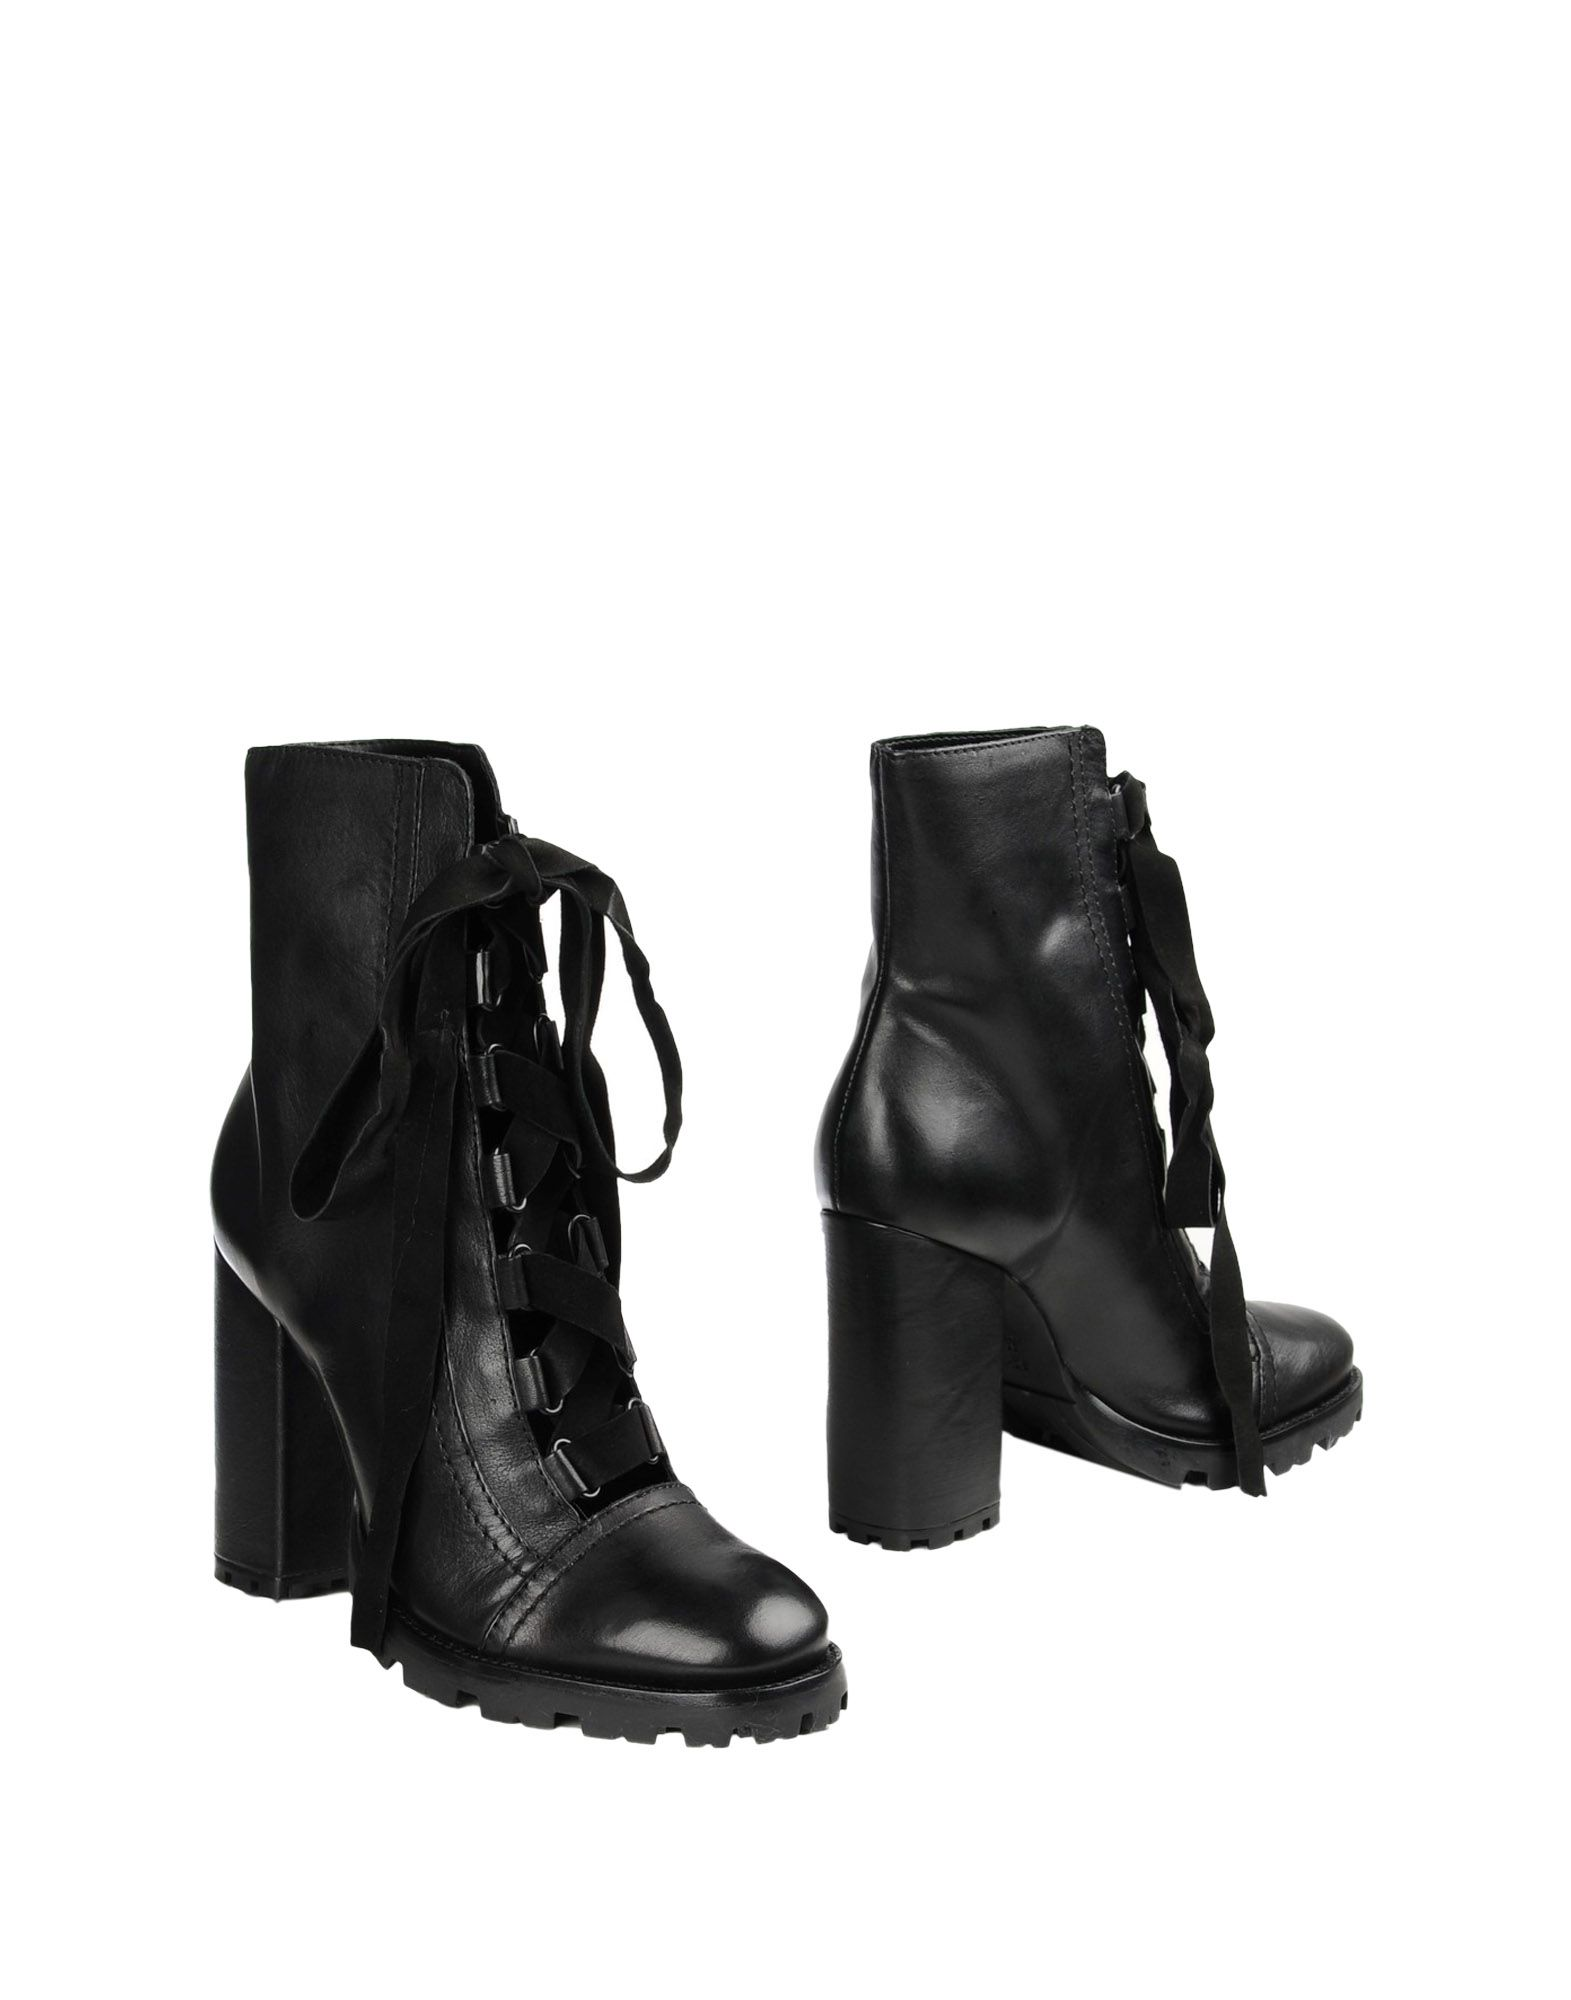 Schutz Ankle Boot Boots - Women Schutz Ankle Boots Boot online on  Australia - 11361304DD f884a1